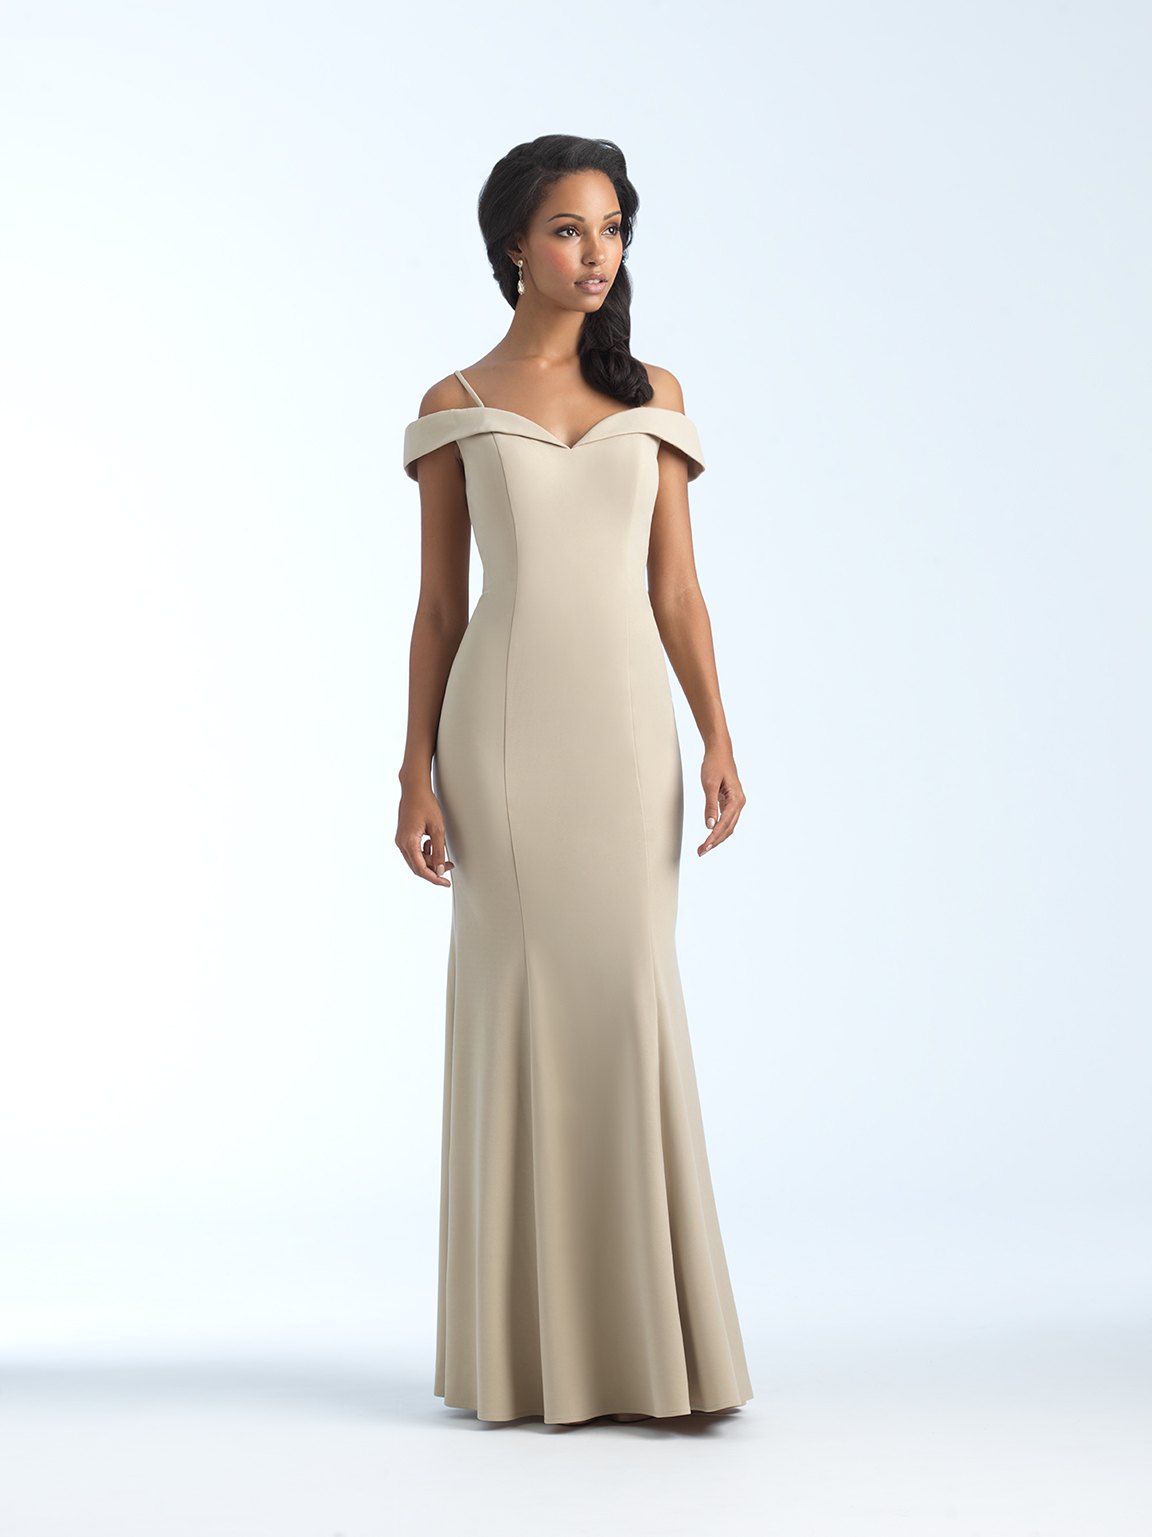 Allure bridesmaid dressesallure bridesmaids 1560allure bridal allure bridesmaid dresses allure bridesmaids 1560 loading zoom ombrellifo Choice Image